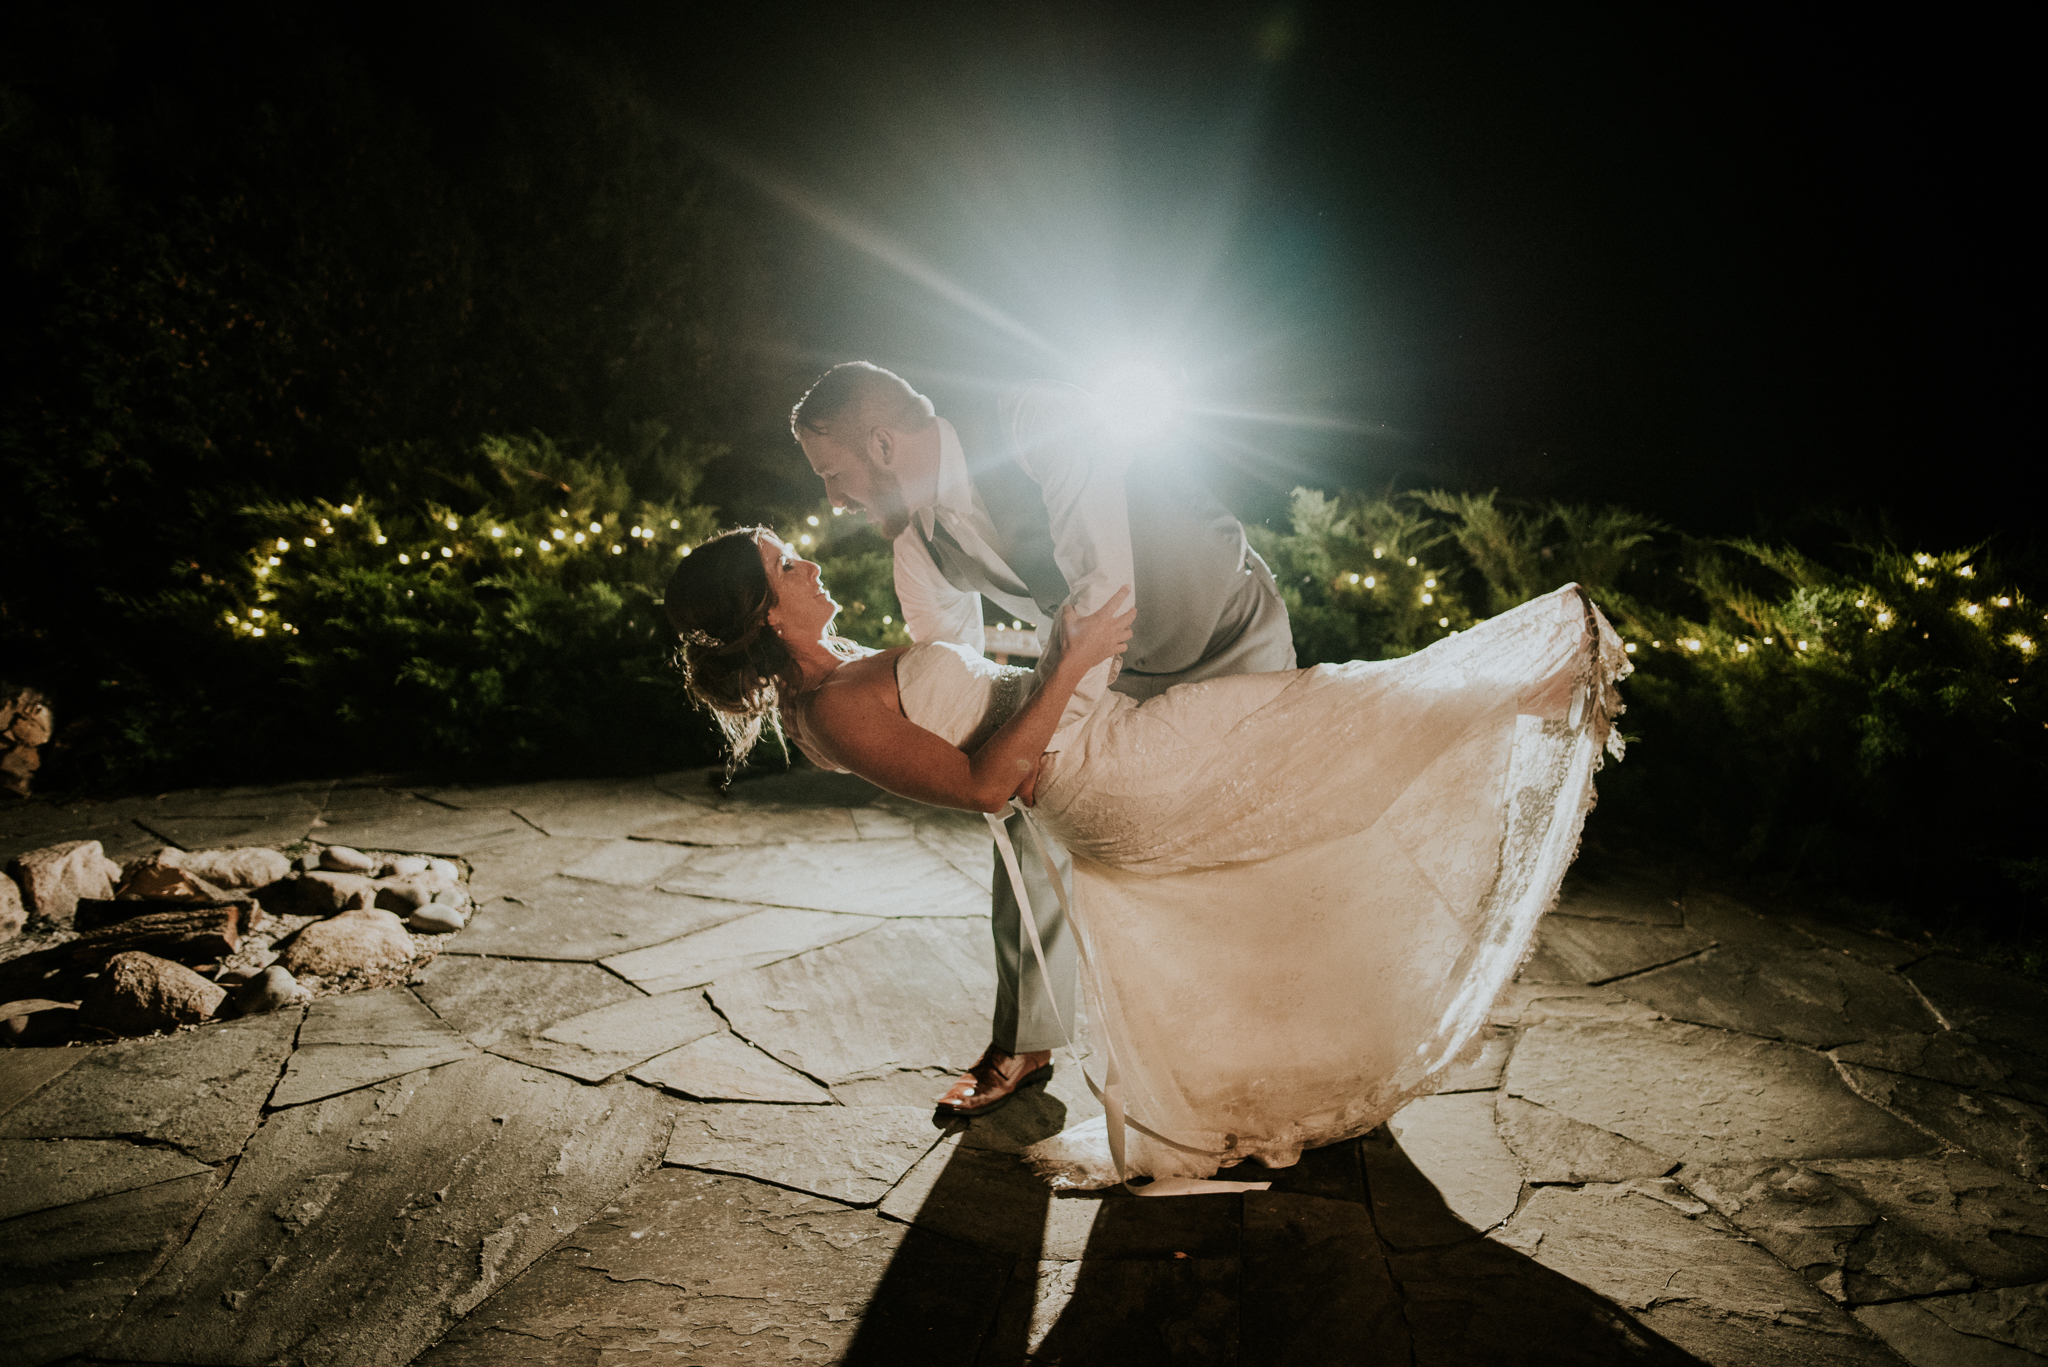 Traverse City Wedding Photographer | Miss Lyss Photography | www.misslyssphotography.com